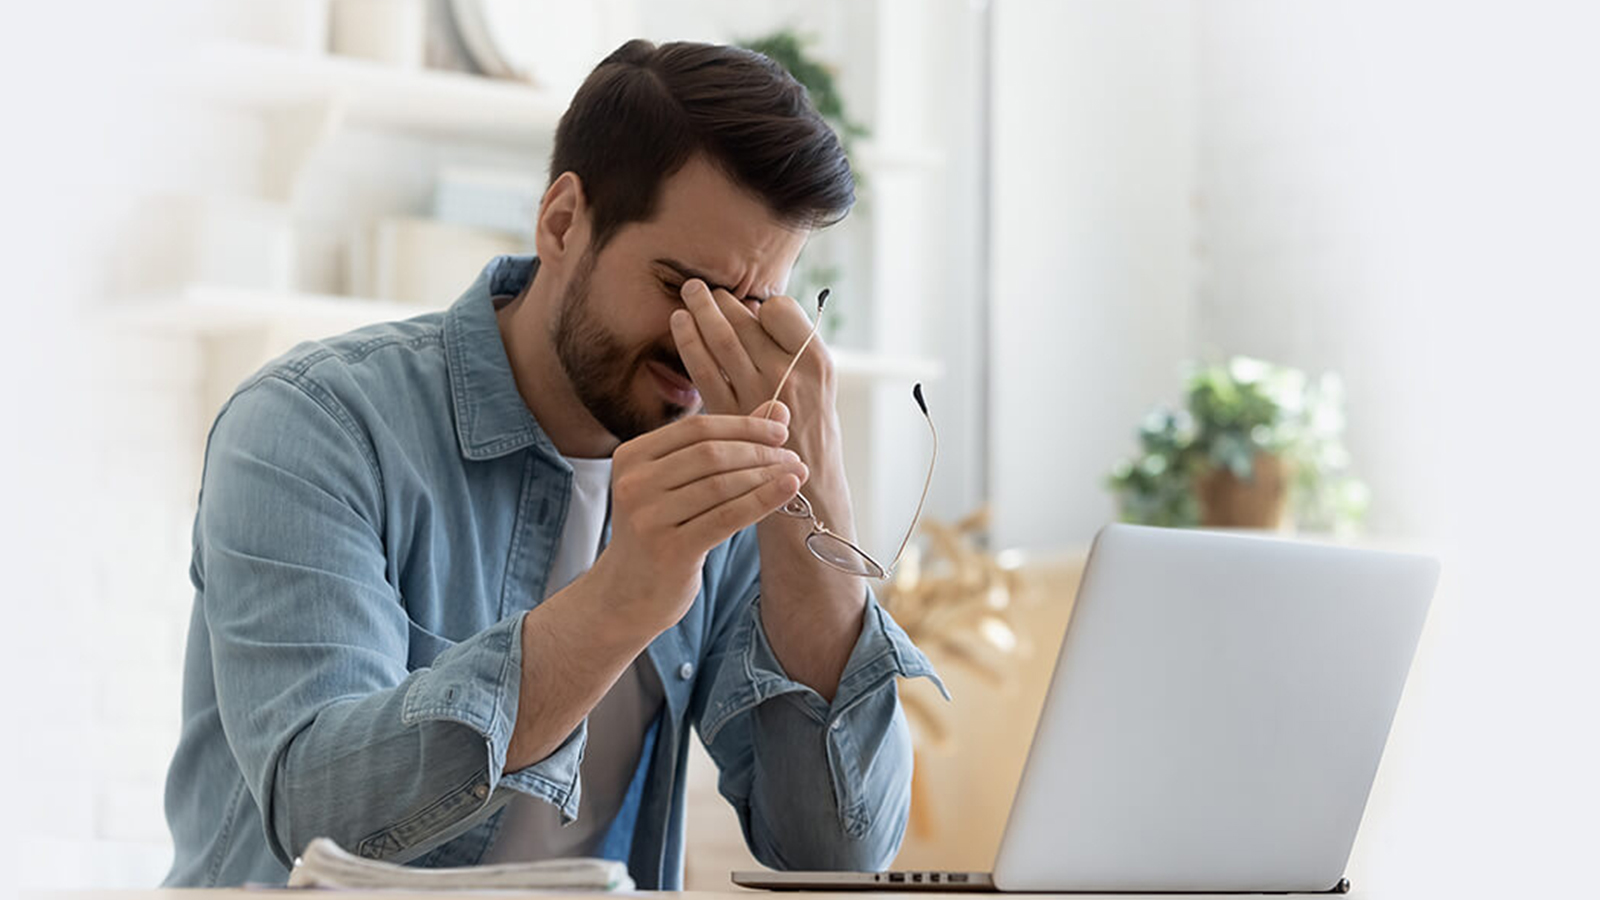 How to prevent eye strain when using a computer?